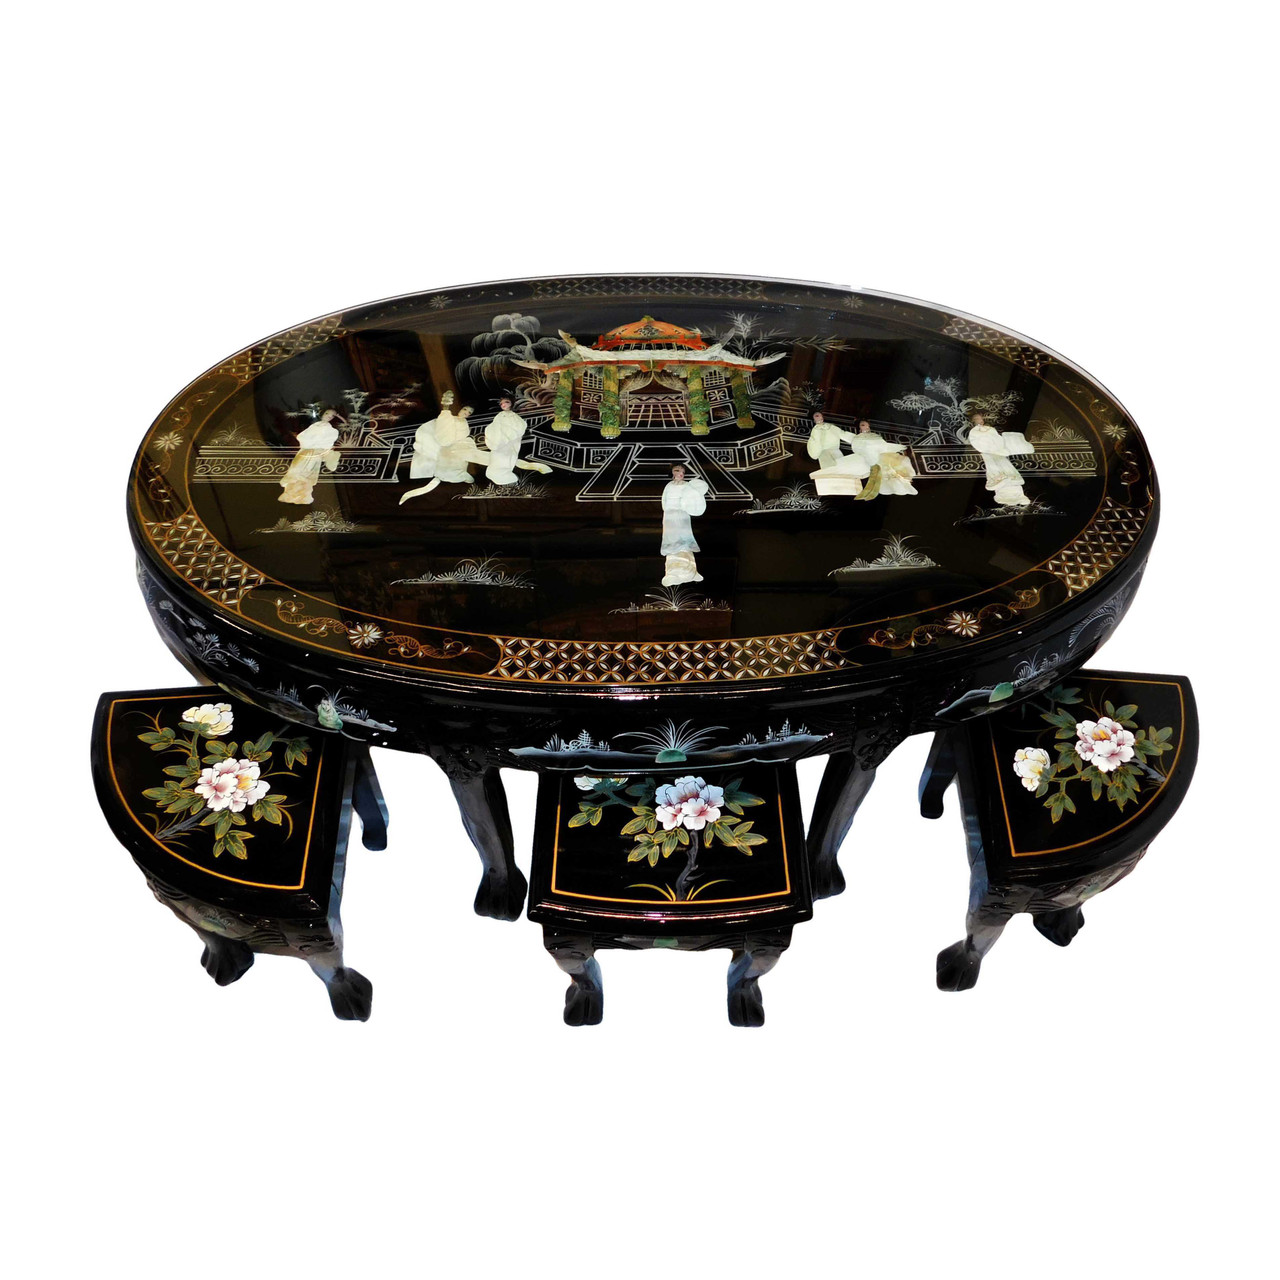 Oriental Coffee Table In Black Lacquer With Inlaid Mother Of Pearl With Six Stools Oriental Furnishings Furniture Decor